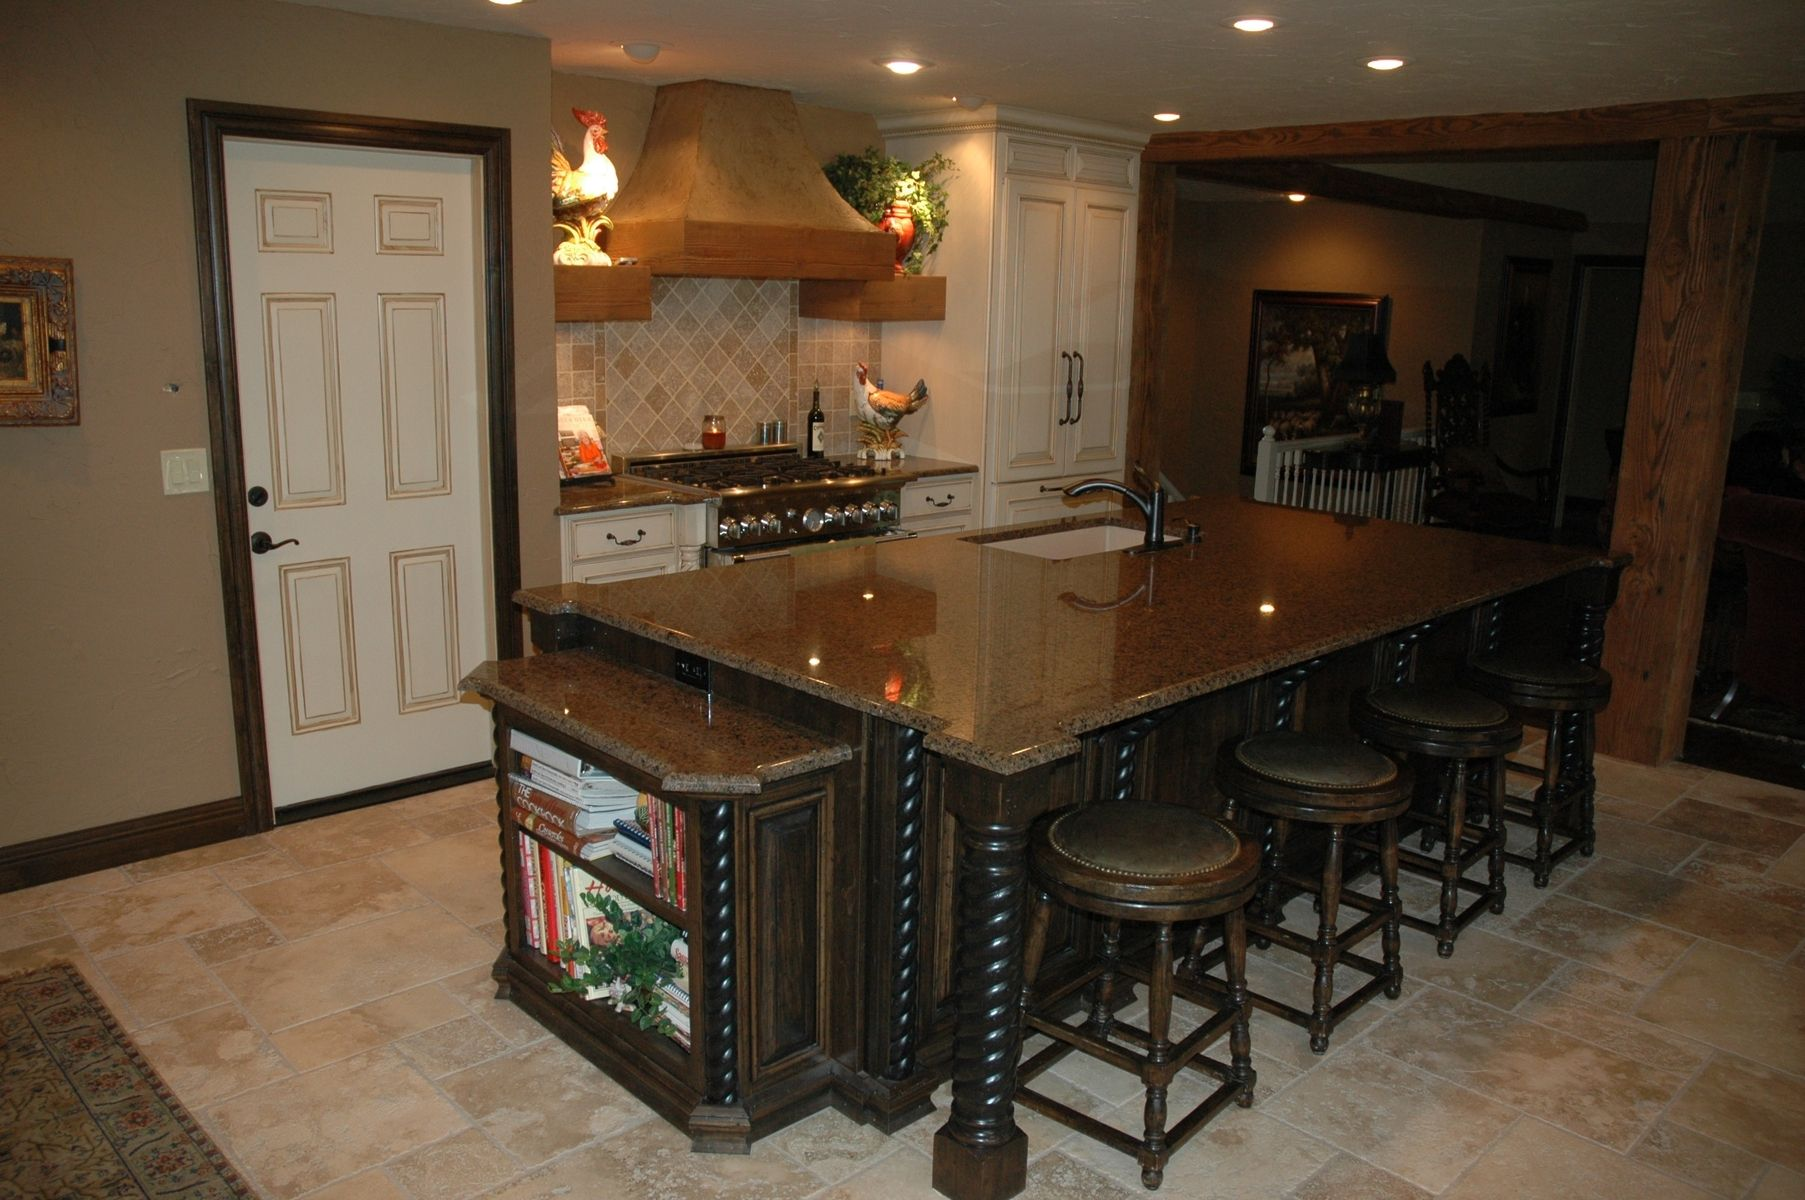 Basement Bar Ideas Kitchen Walla: Custom Made Rustic Island With French Country Painted